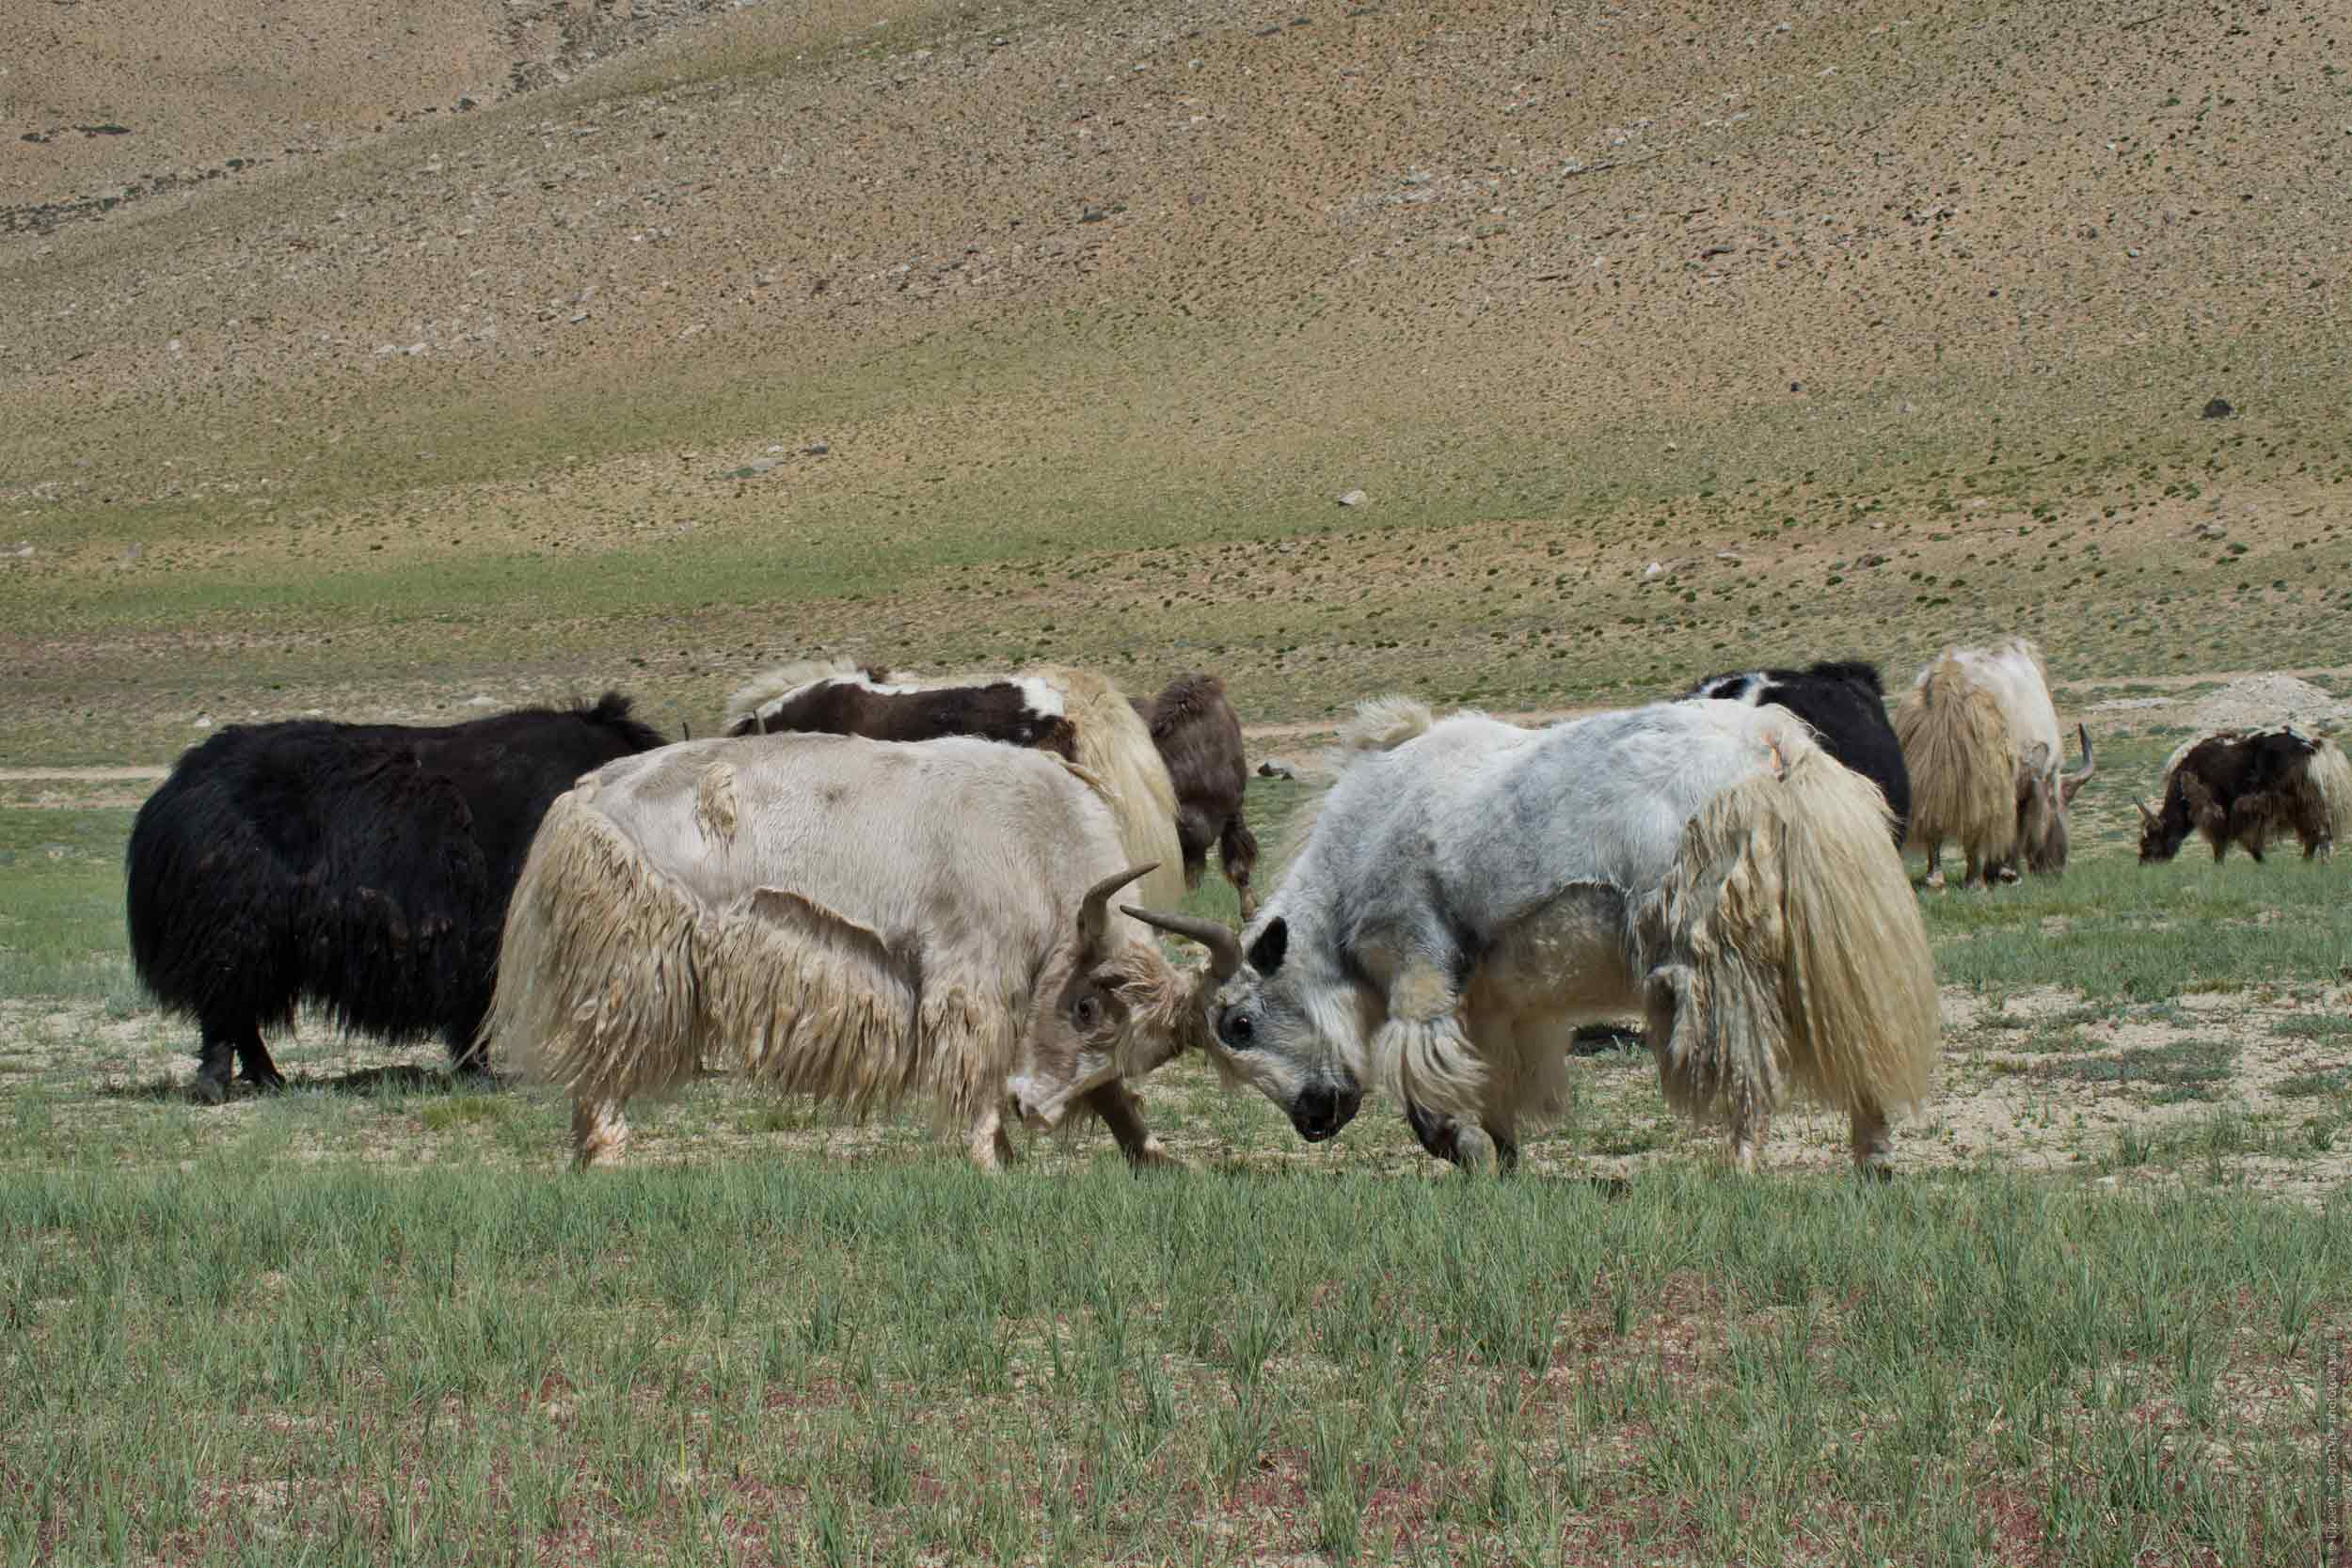 Tibetan yaks. Tour Tibet Lakeside Advertising: Alpine lakes, geyser valley, Lamayuru, Colored Mountains, 01 - 10.09. 2021 year.